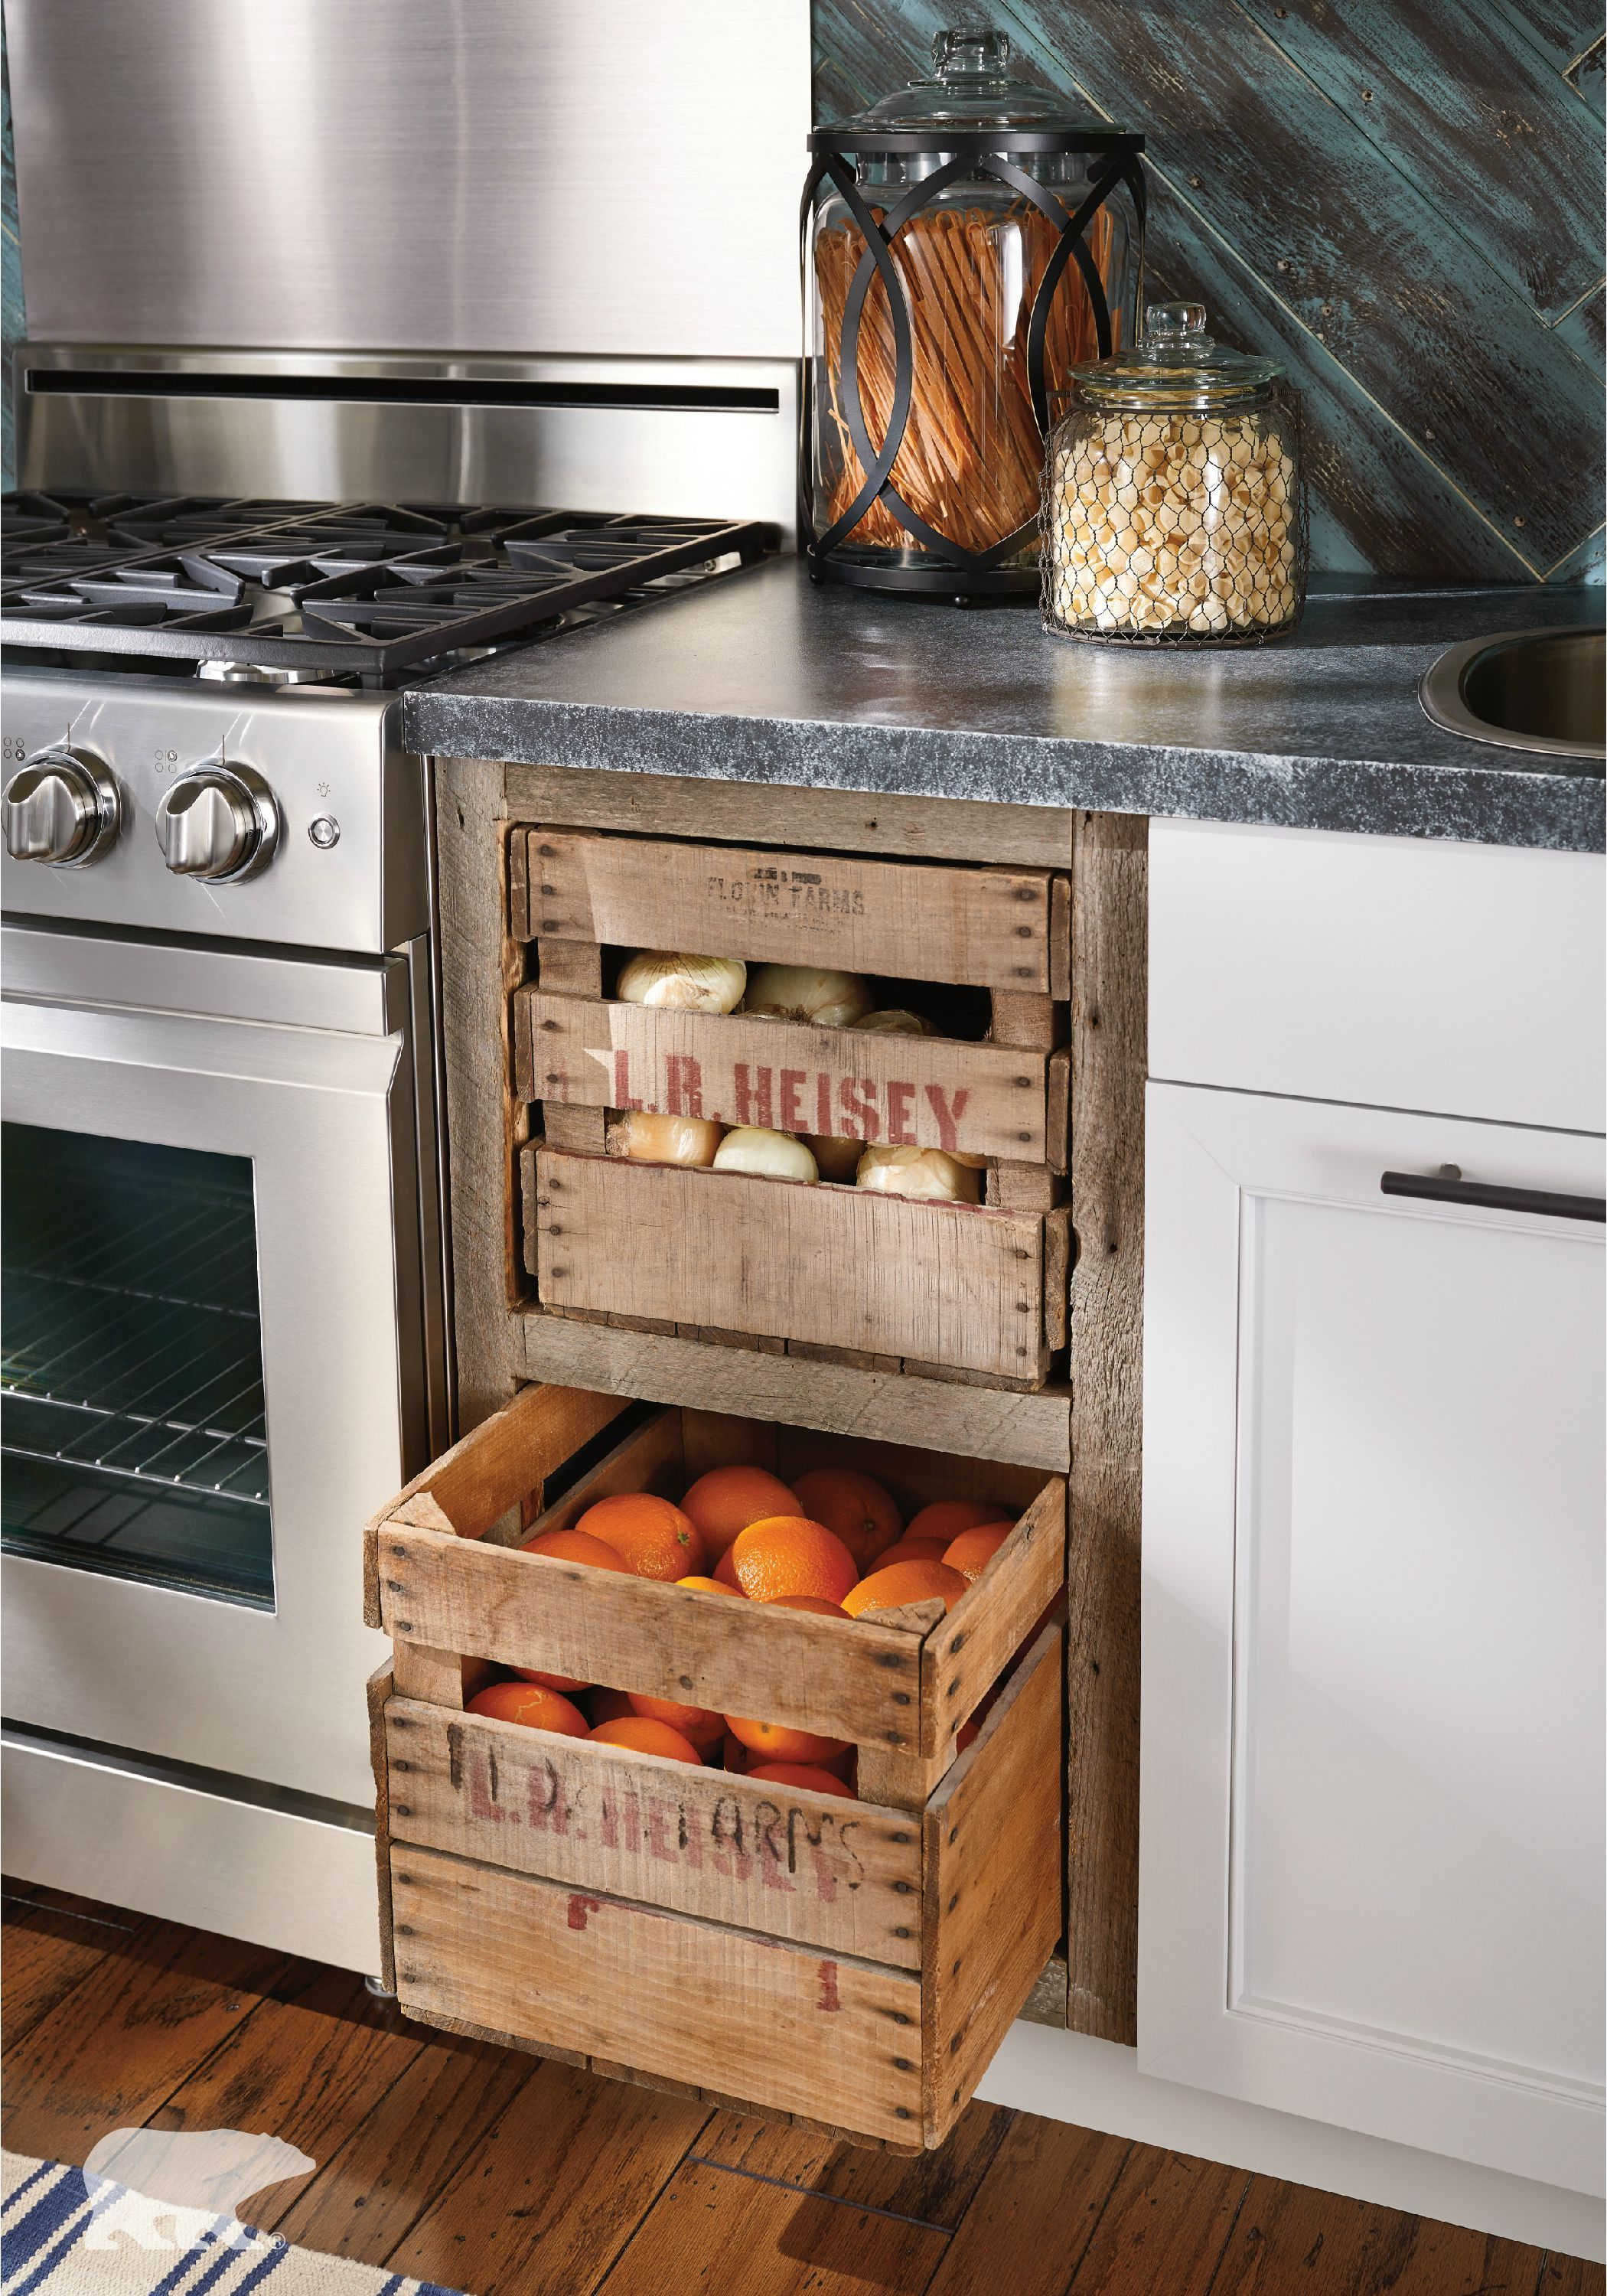 Dachboden über küchenideen remodeling your kitchen and want a farmhouse look use a washedout